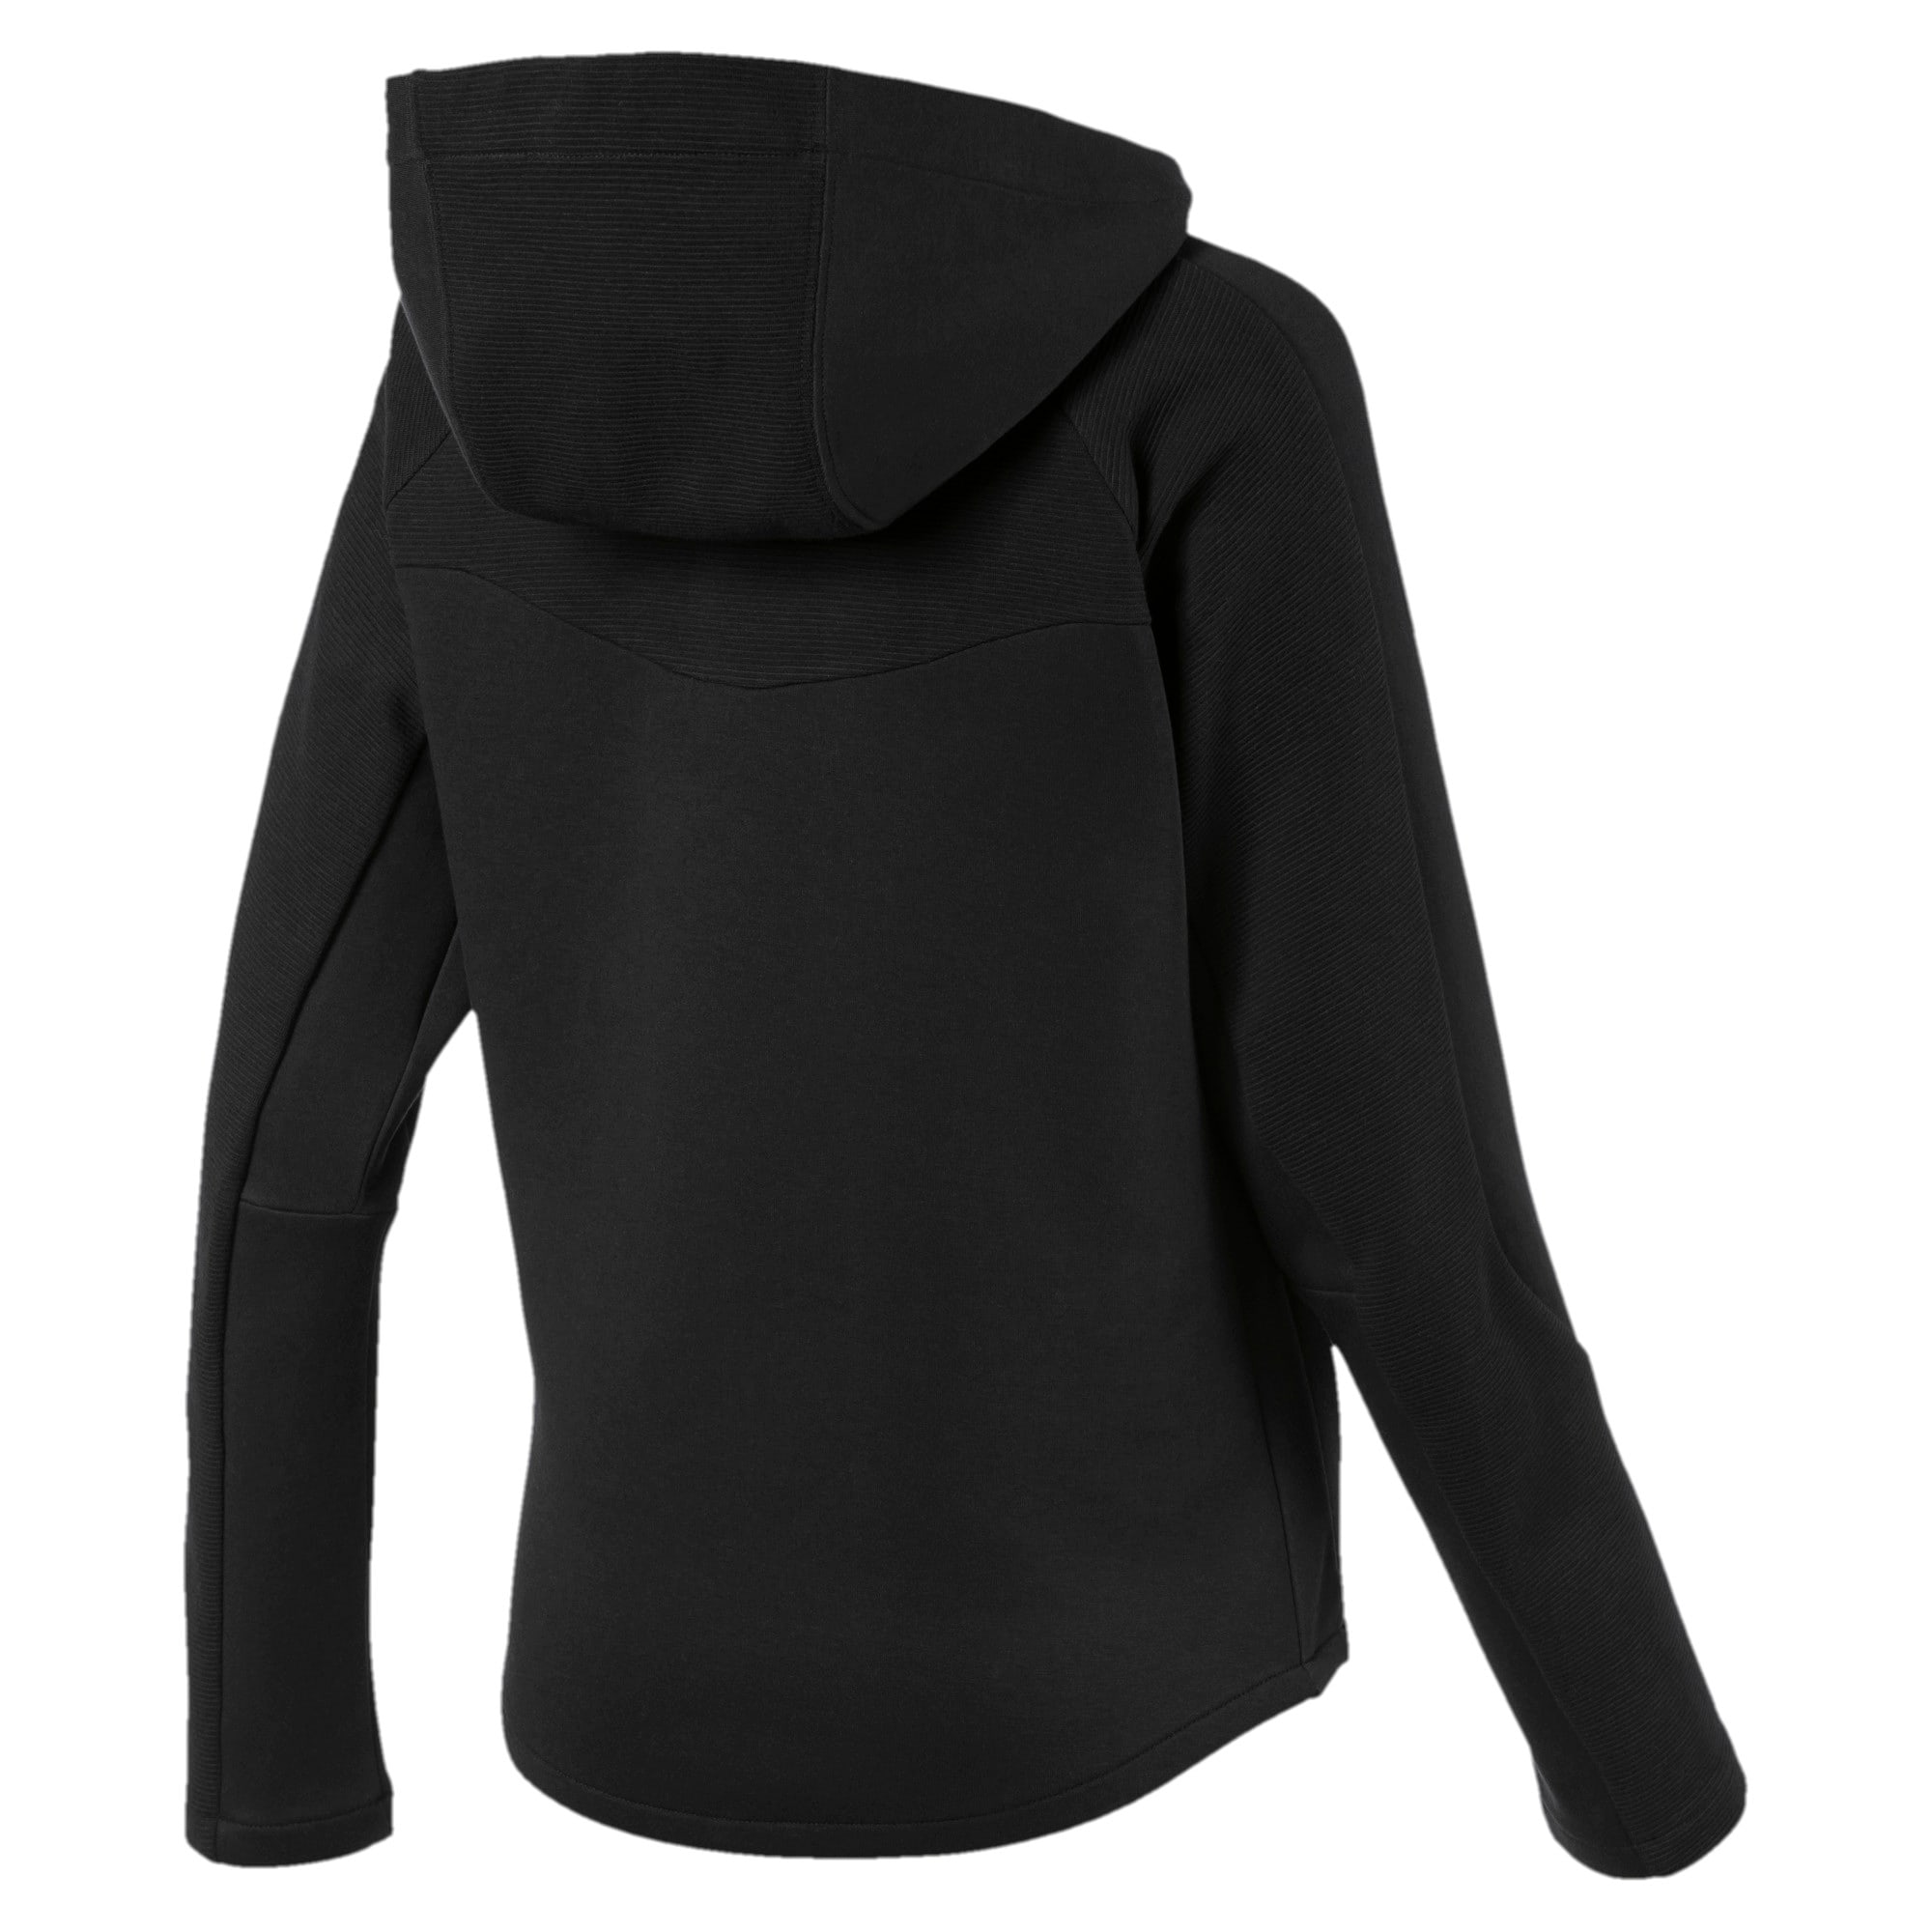 Thumbnail 5 of Evostripe Damen Sweatjacke mit Kapuze, Puma Black, medium